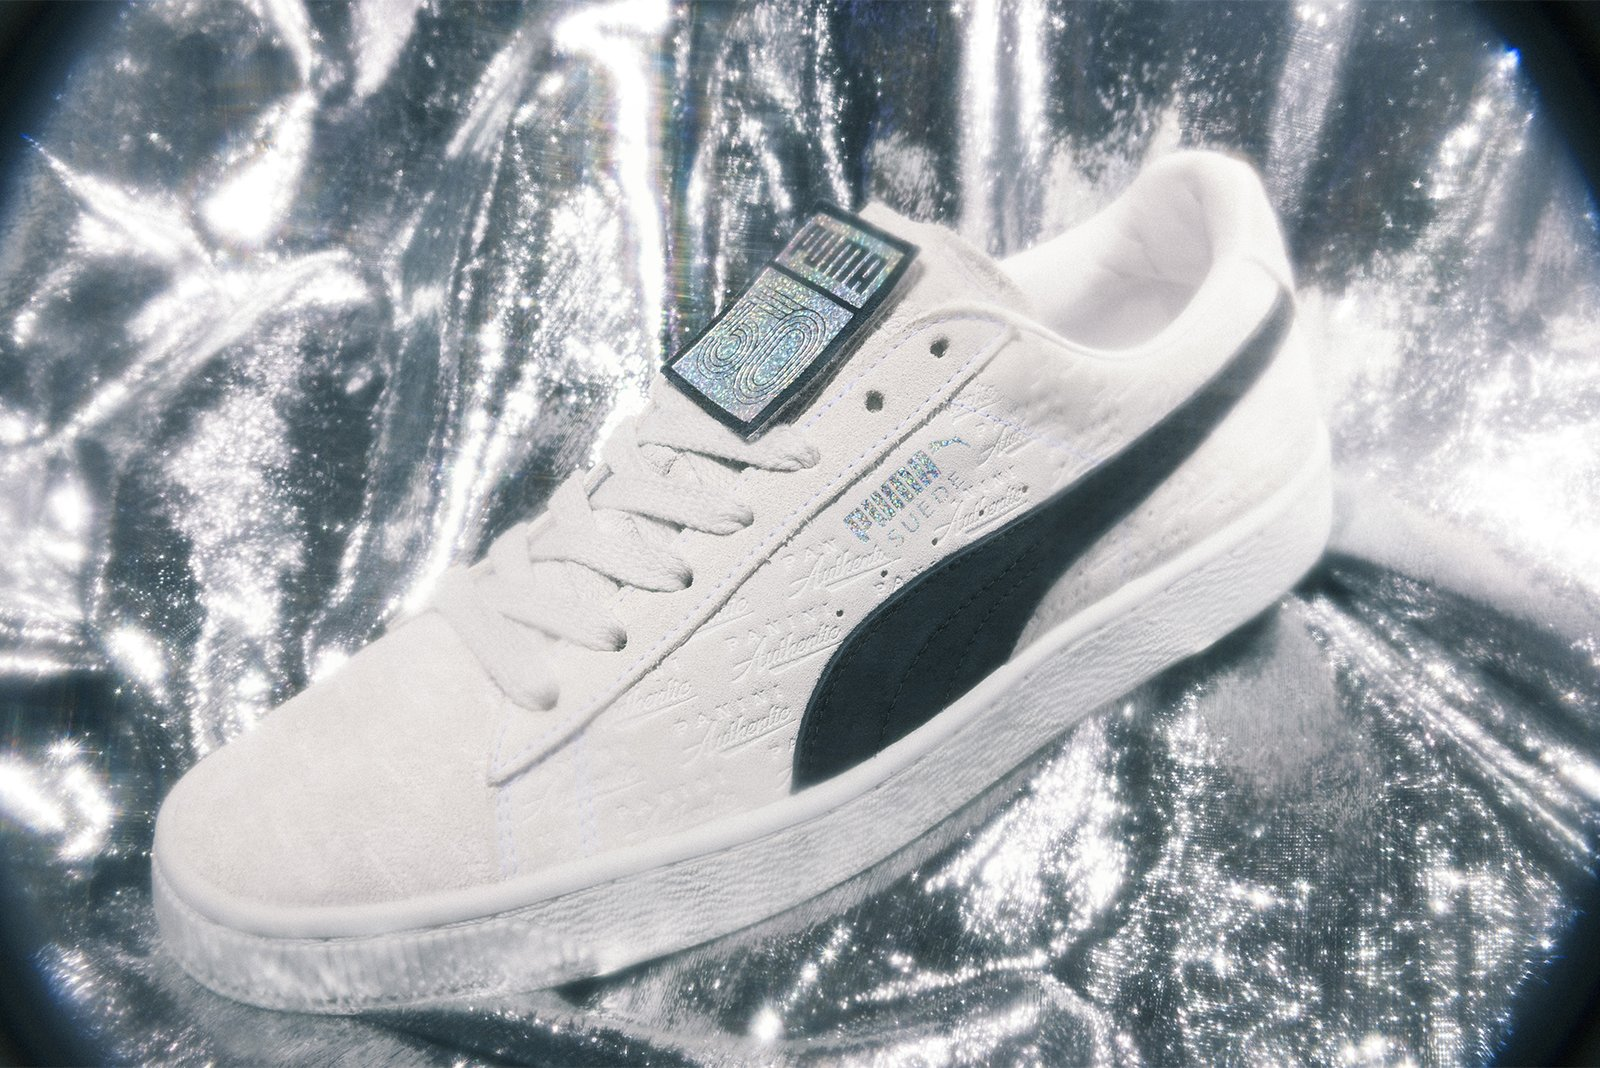 18SS_SP_Select_Suede-50_Panini_a_RGB.jpg